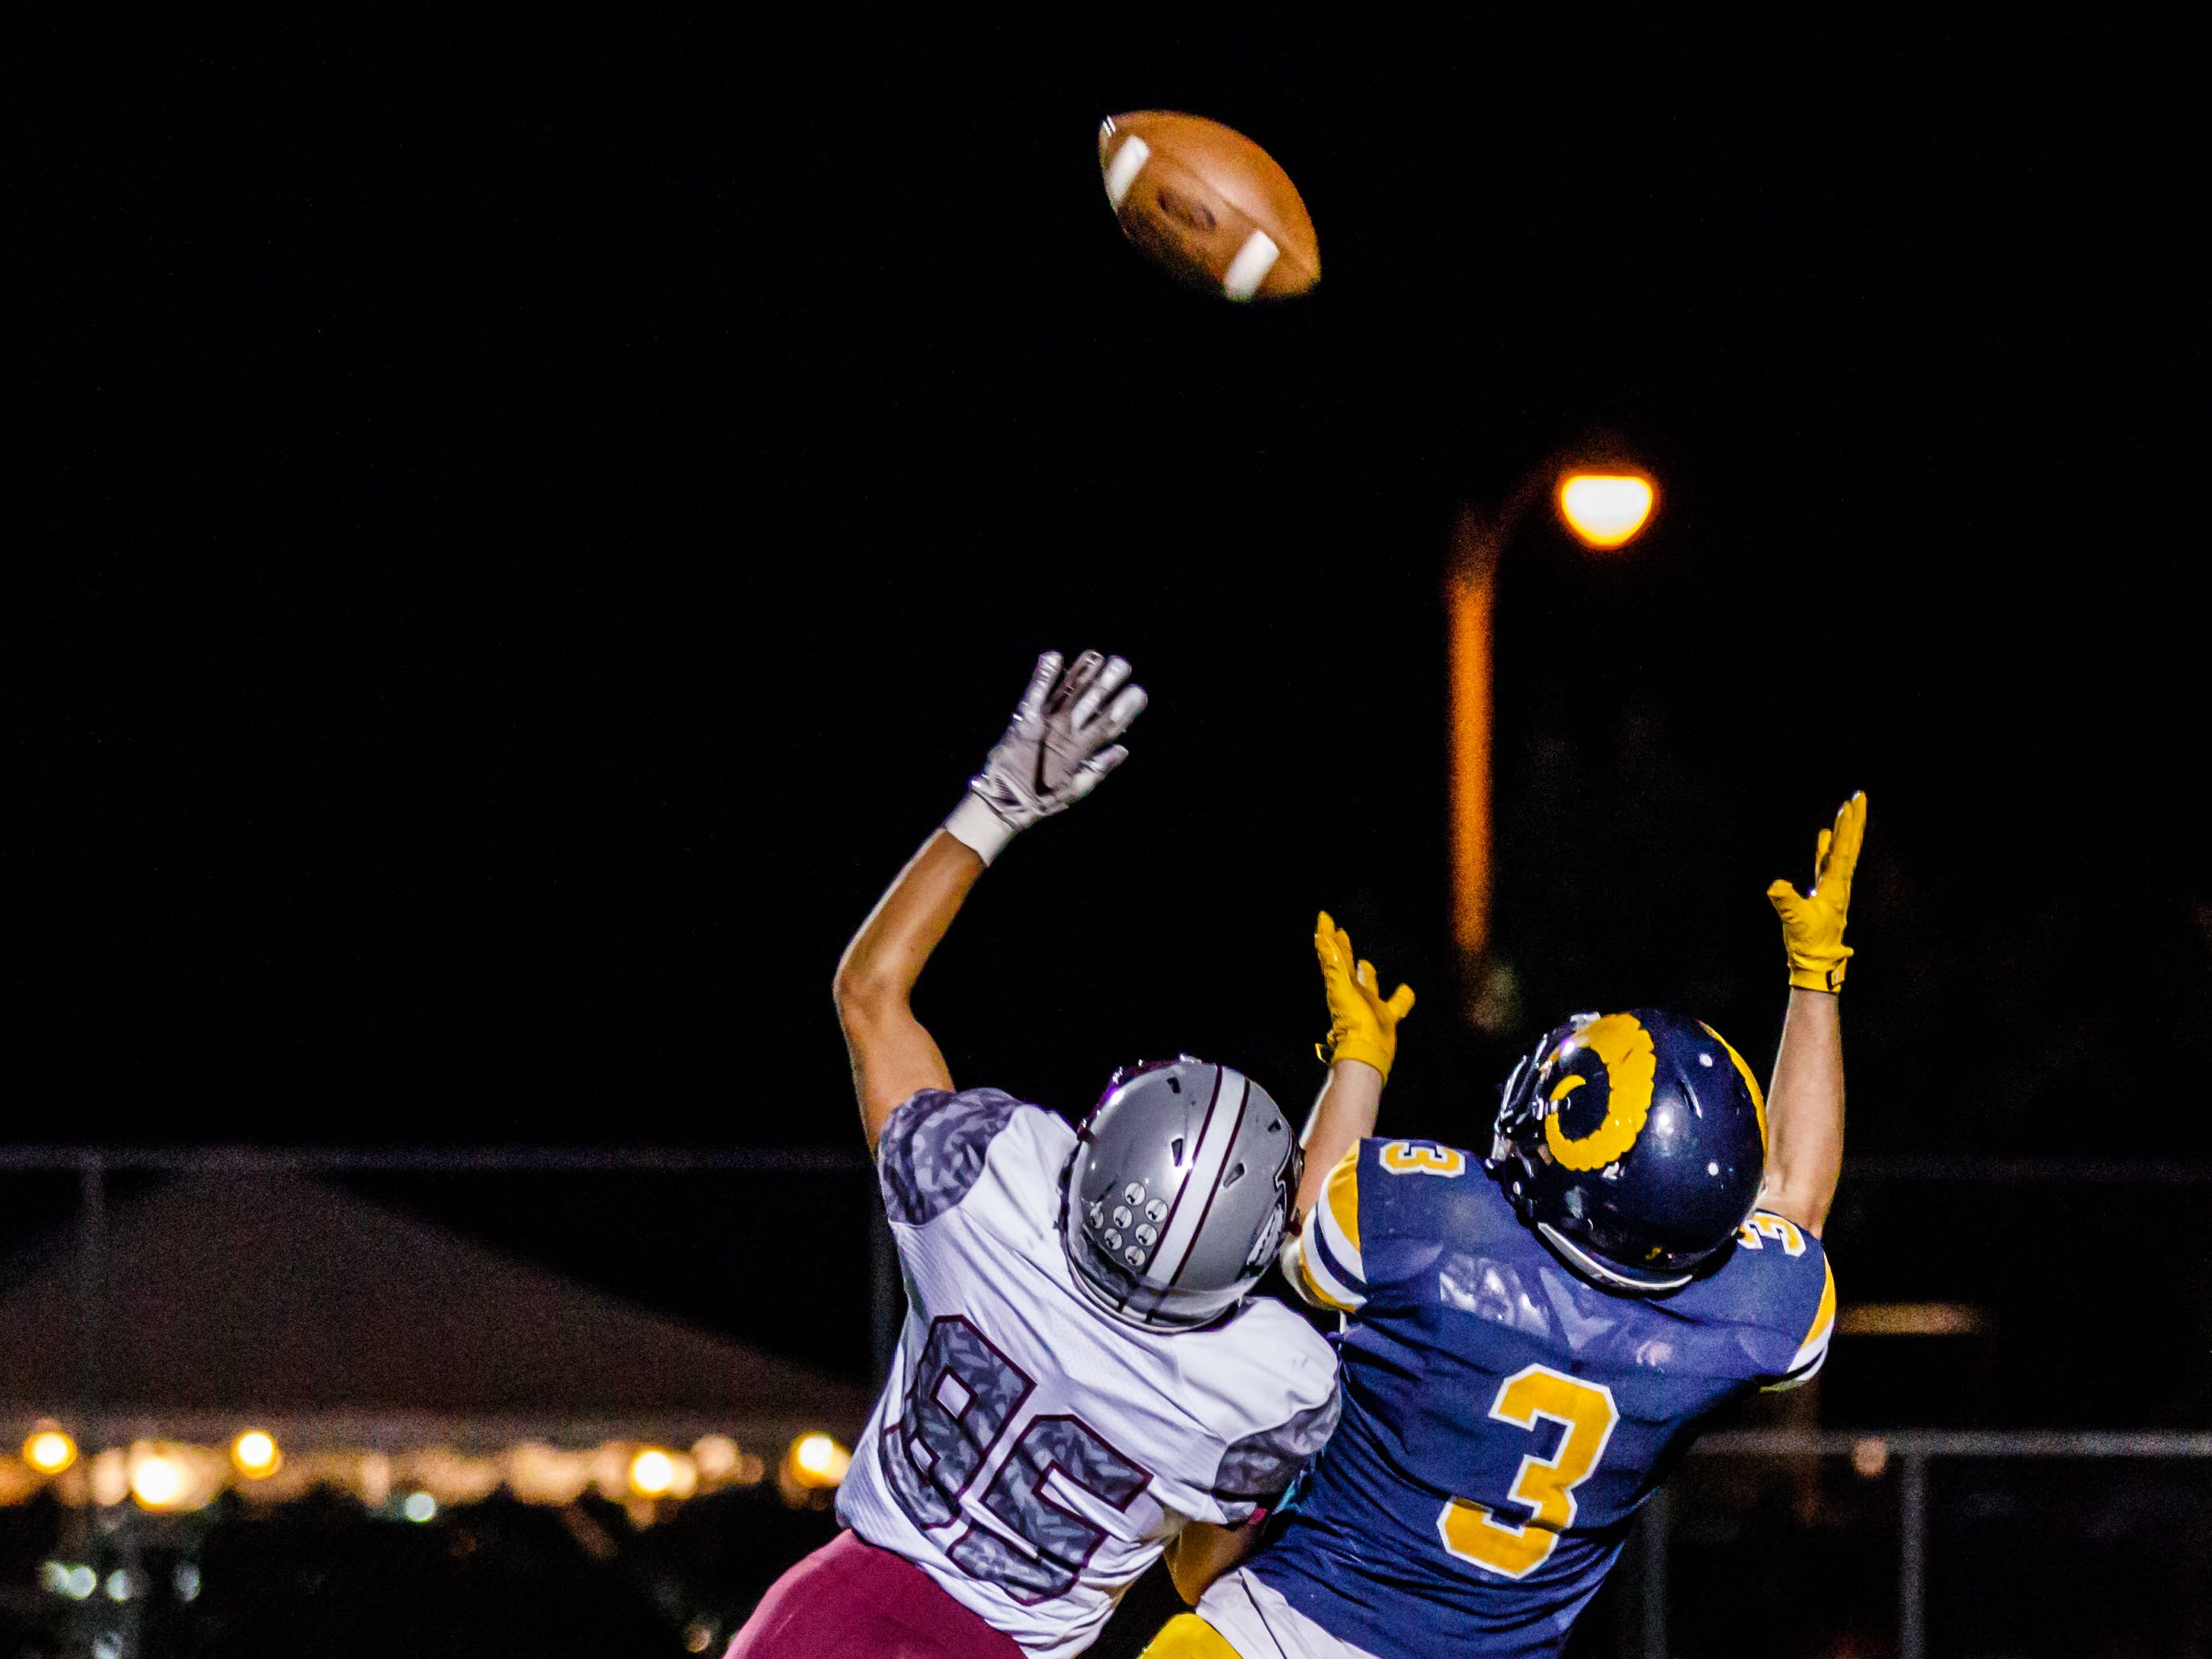 Marquette wide receiver Reed Thompson (3) pulls in a perfectly thrown pass despite a heroic effort by Menomonee Falls defensive back Connor Cedeno (85) at Hart Park on Friday, Sept. 7, 2018. The play was called back due to a holding call on Marquette.